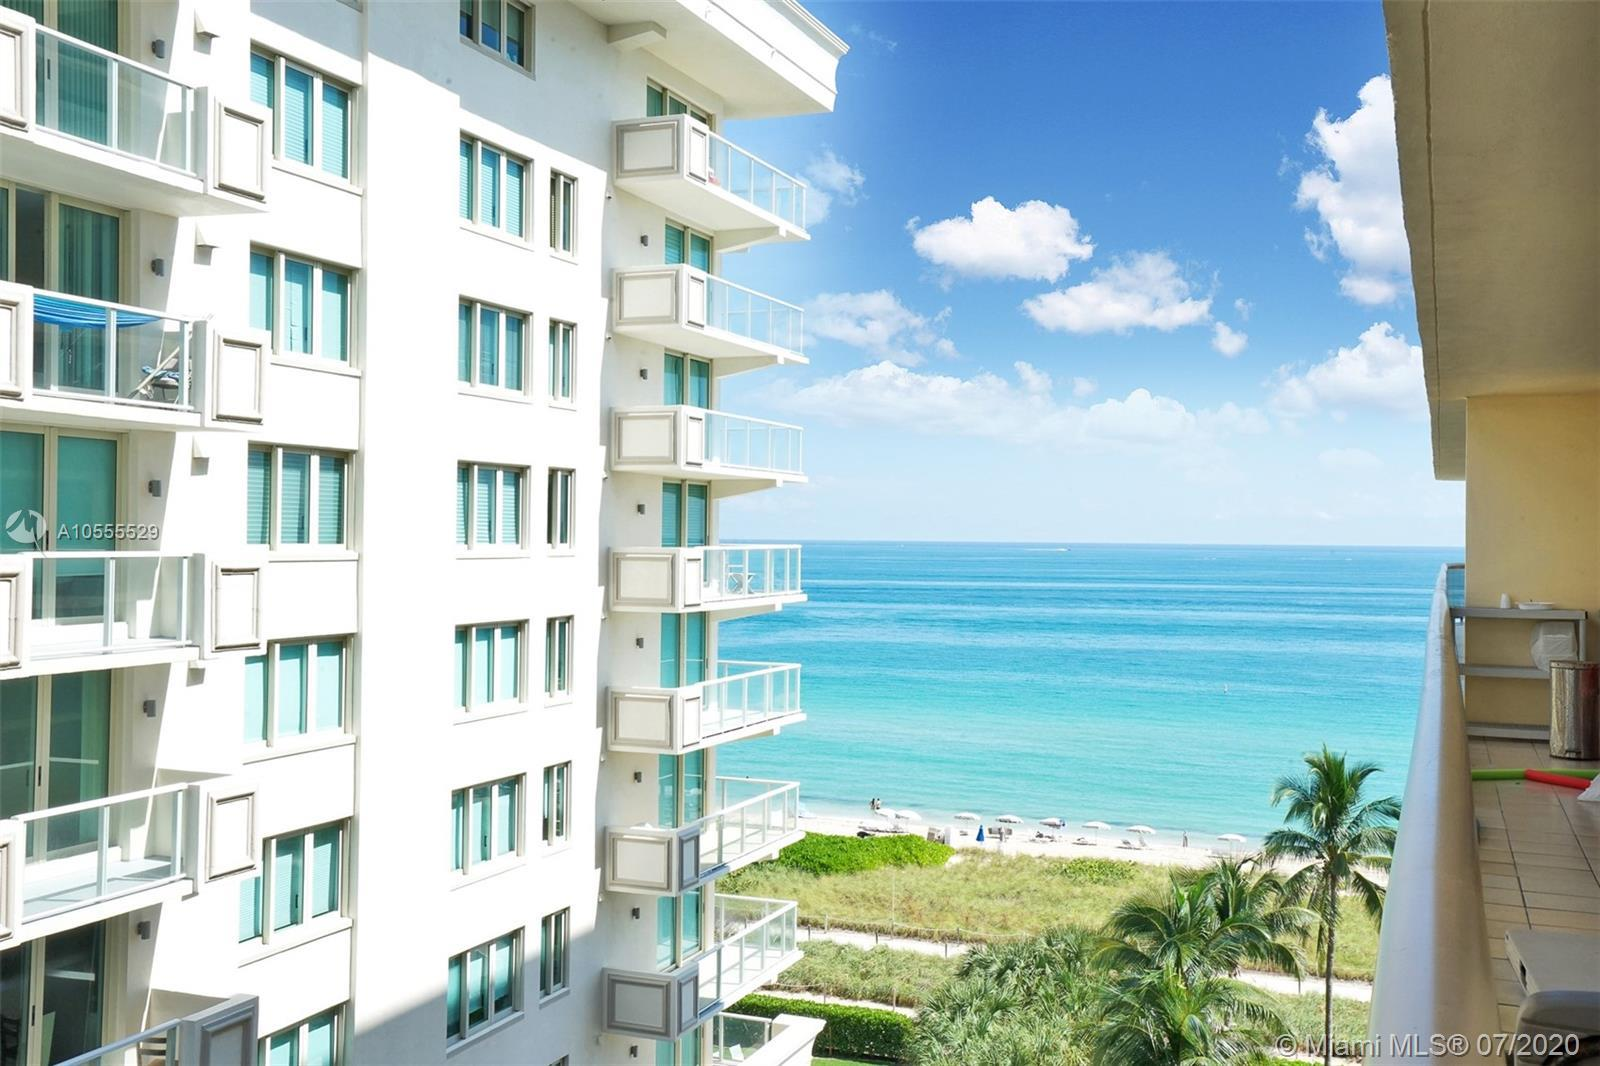 Live right on the beach in this spacious 2 bedroom, 2 bathroom waterfront unit at The Waves in Surfs